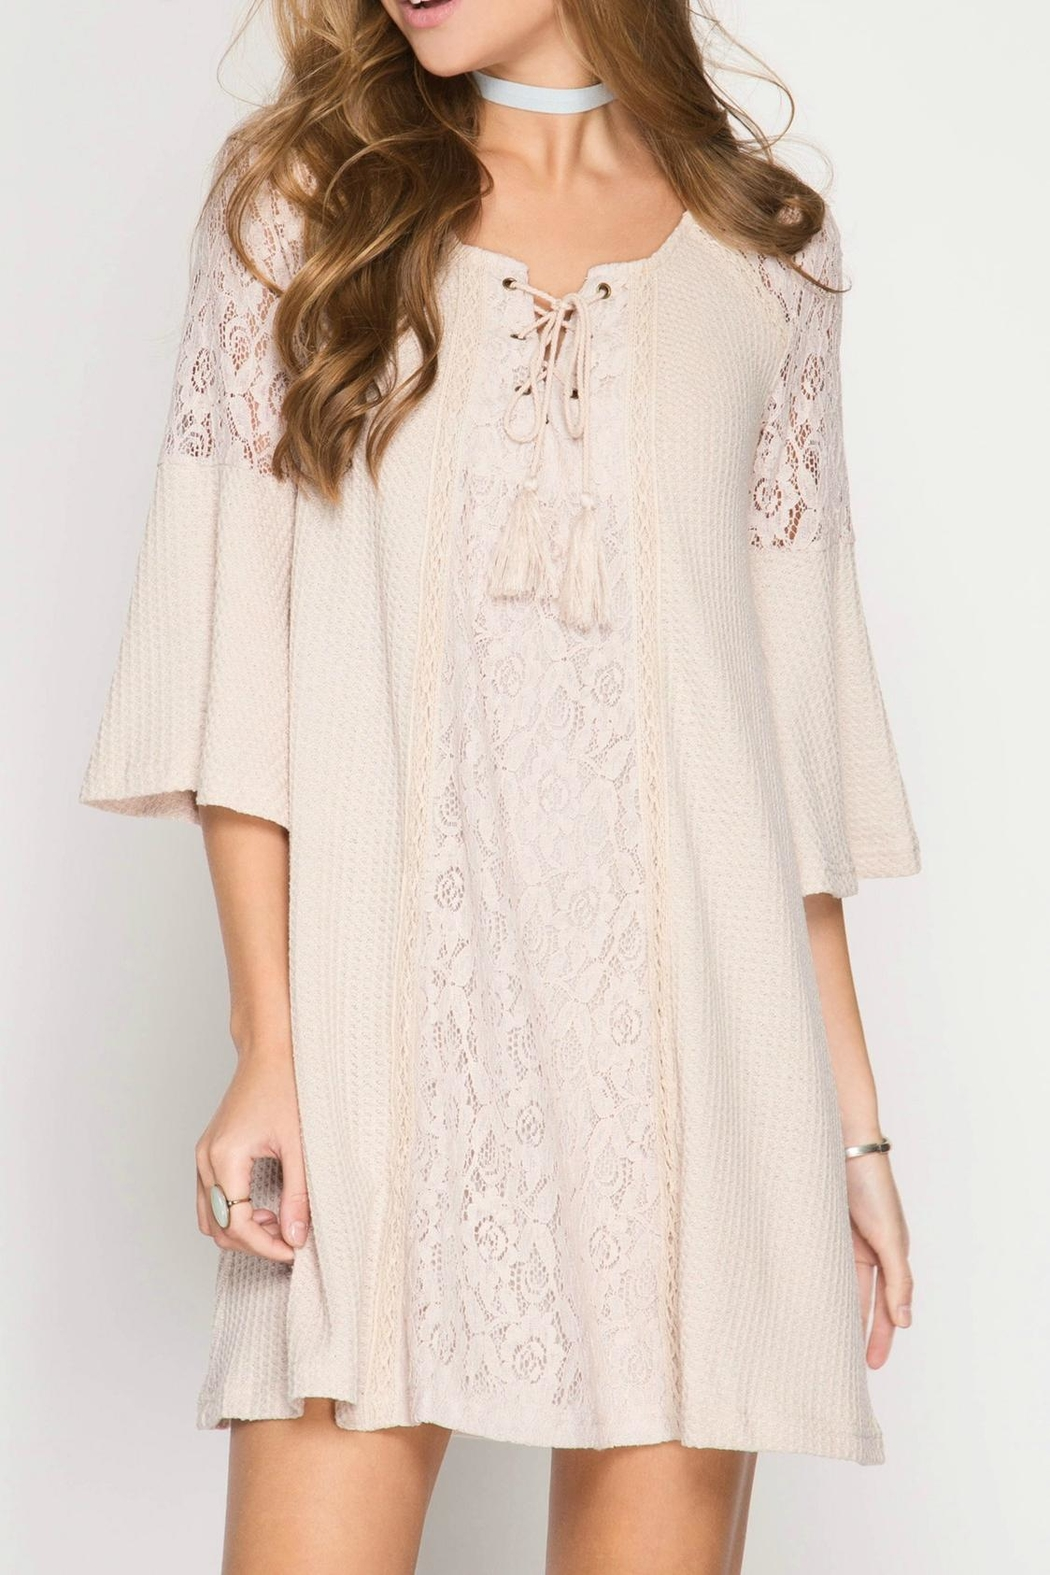 She + Sky Boho Shift Dress - Main Image